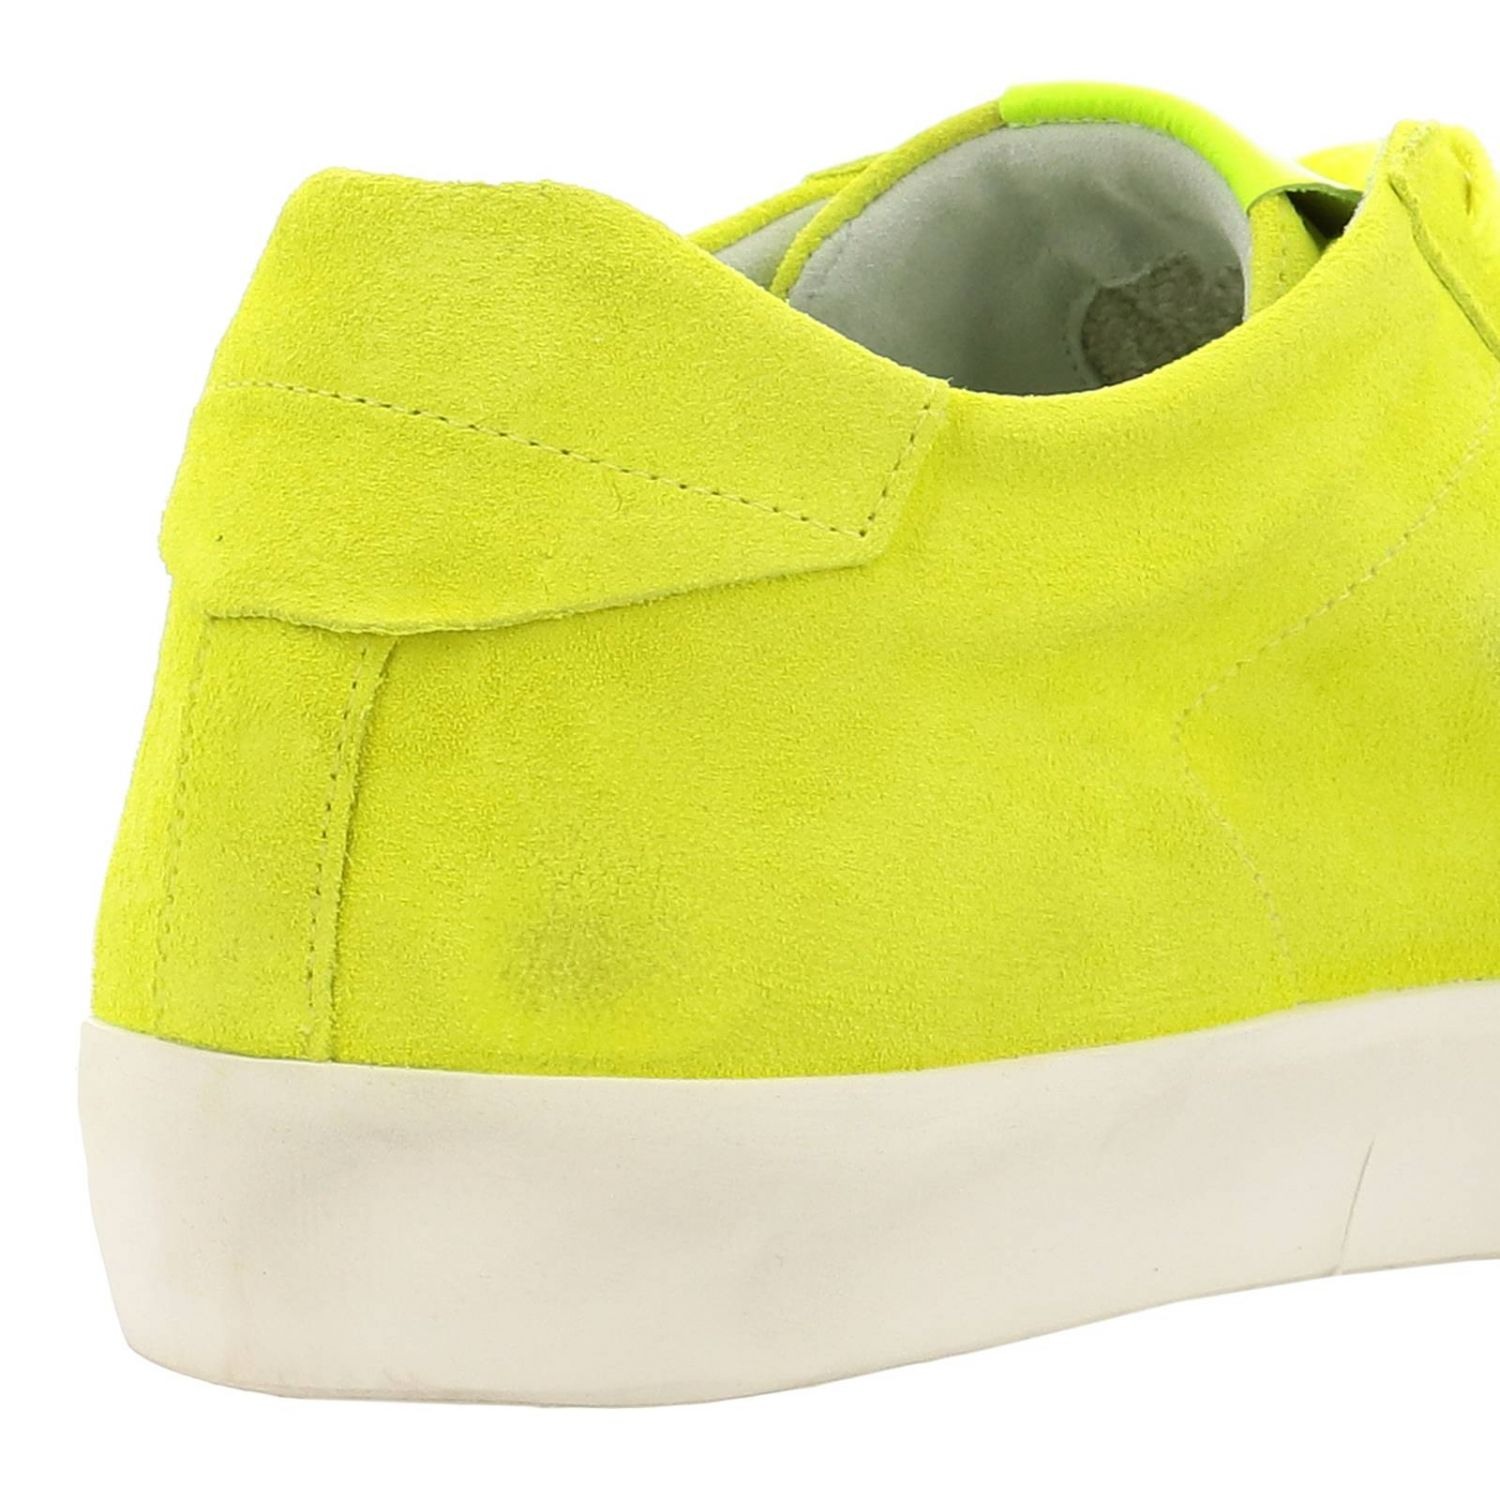 Trainers men Leather Crown yellow 4